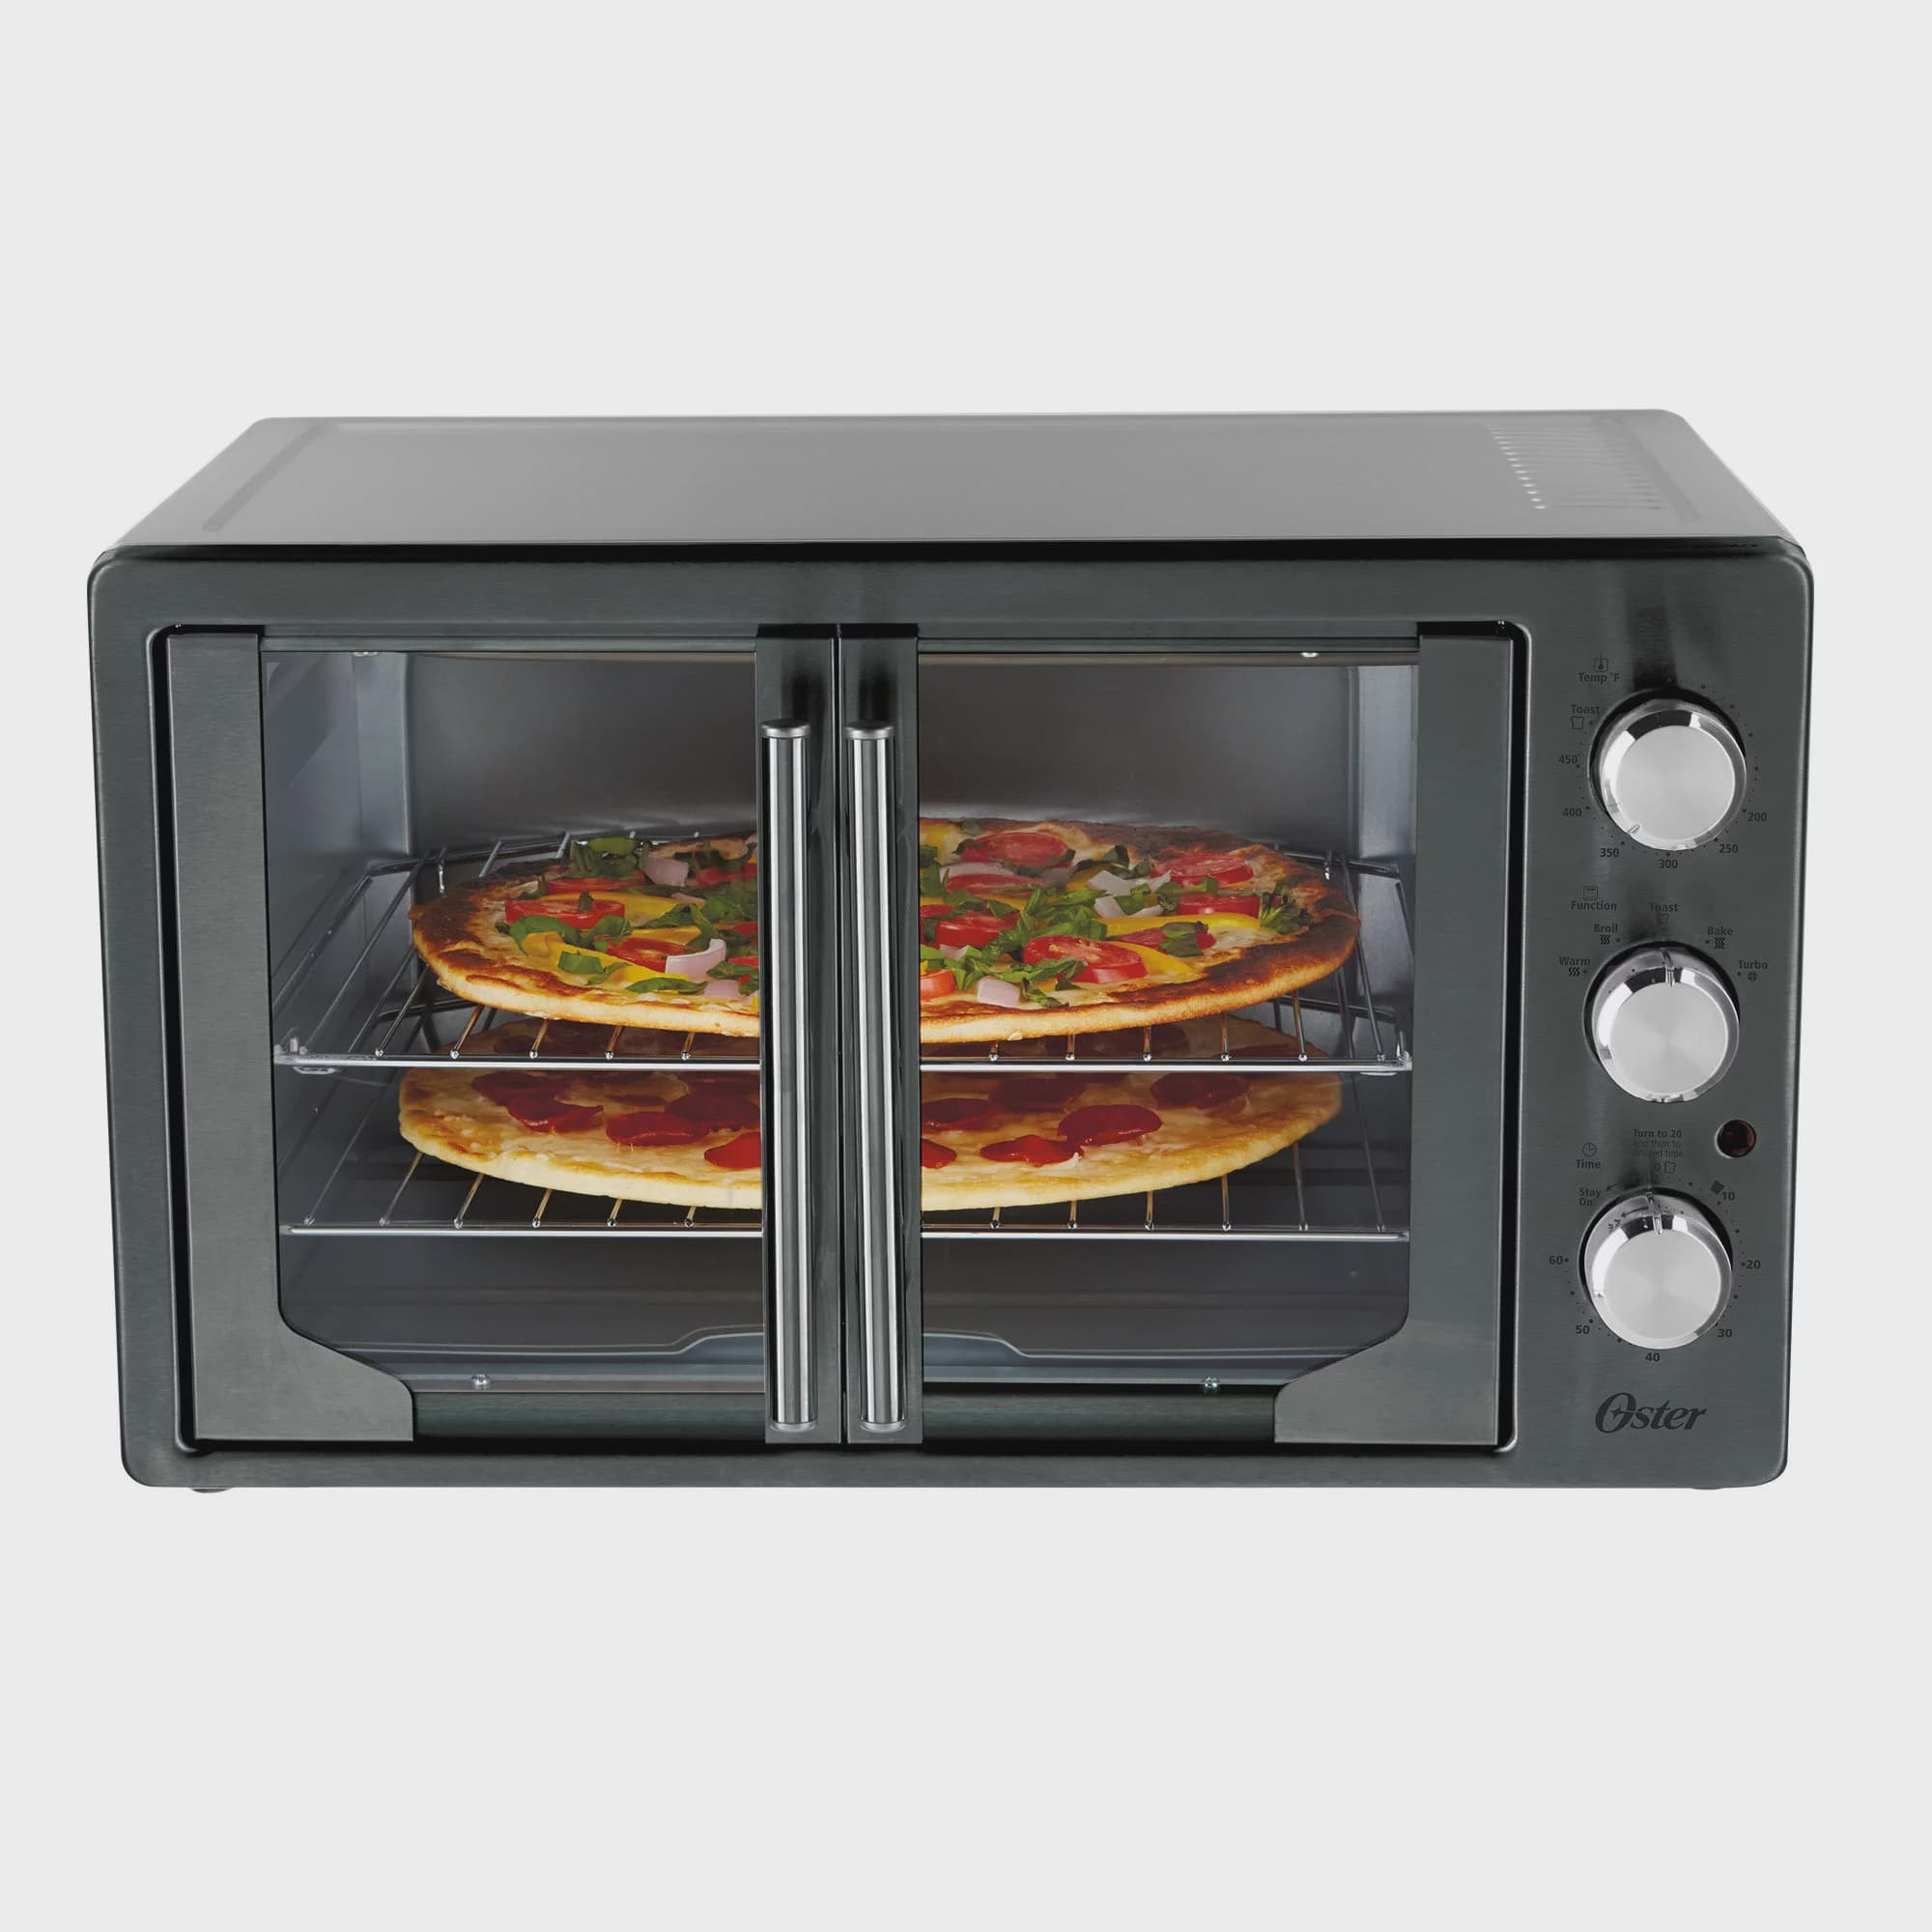 Oster Digital Metallic Amp Charcoal French Door Oven With